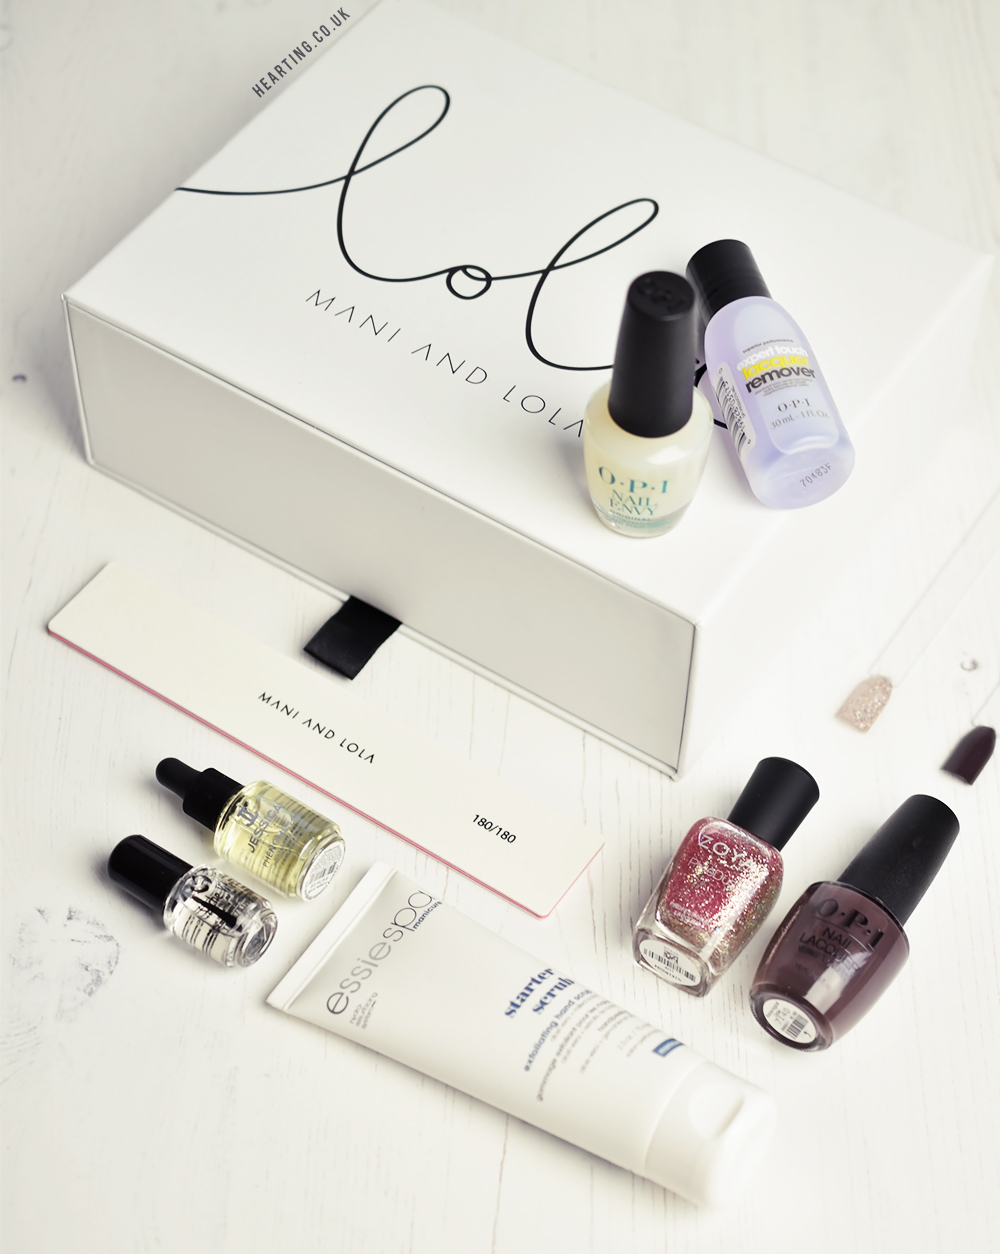 Mani and Lola November Edit #1 Nail Polish Subscription Box